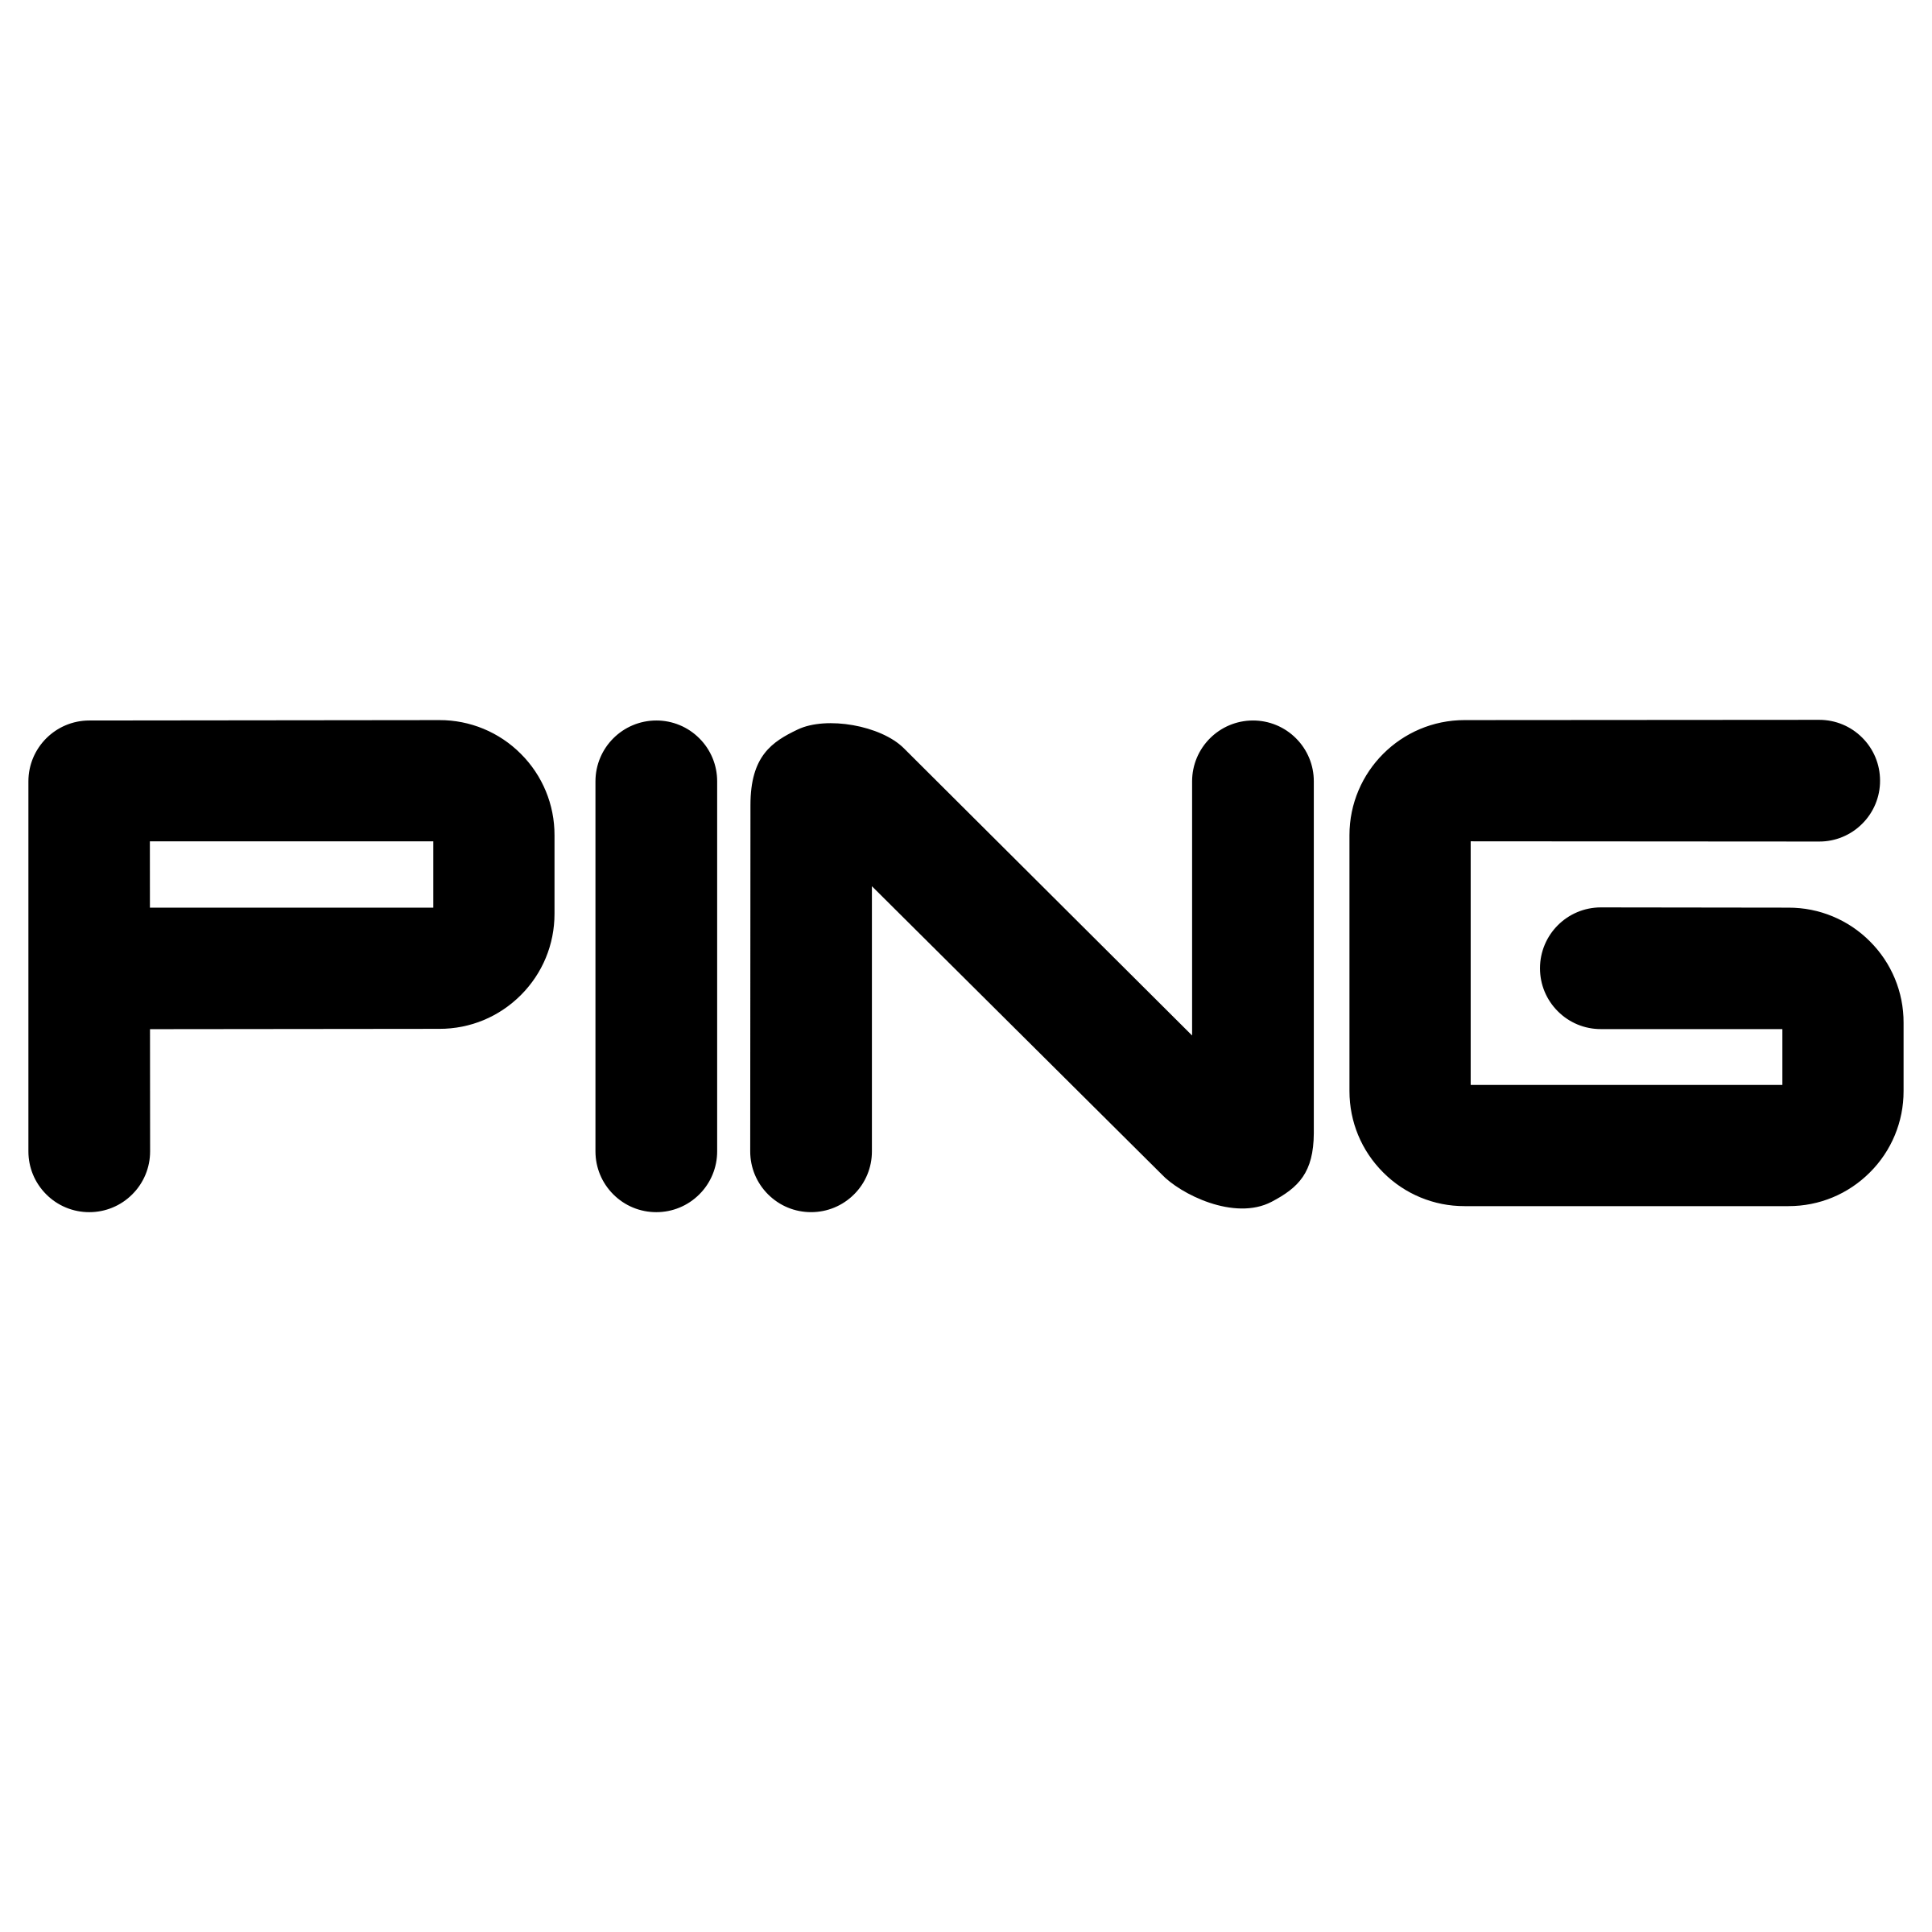 ping-logo-png-transparent